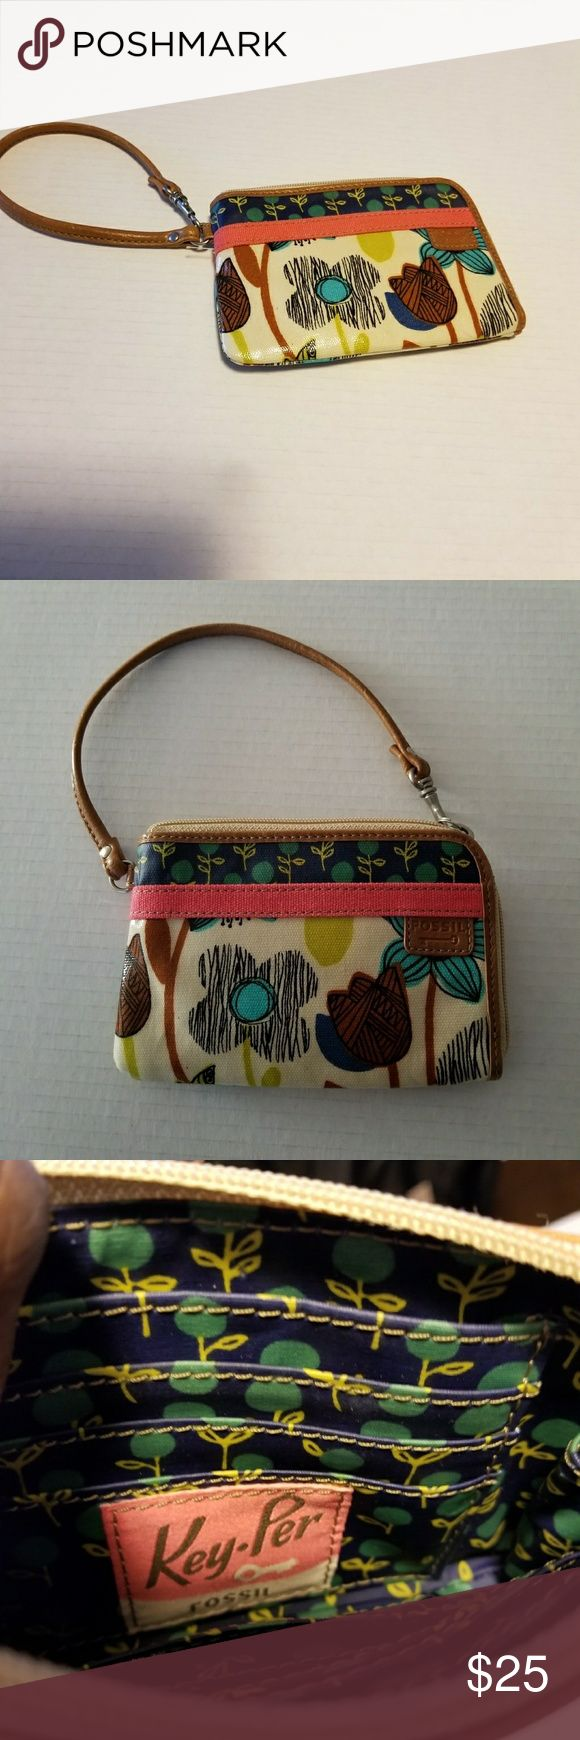 Fossil wristlet Key-Per floral pattern . Fossil wristlet Key-Per floral pattern   The inside has eight compartments for credit cards, business cards, ect. There still room for cell phone, cash. Strap can be used two ways notice in pictures. Fossil Bags Clutches & Wristlets